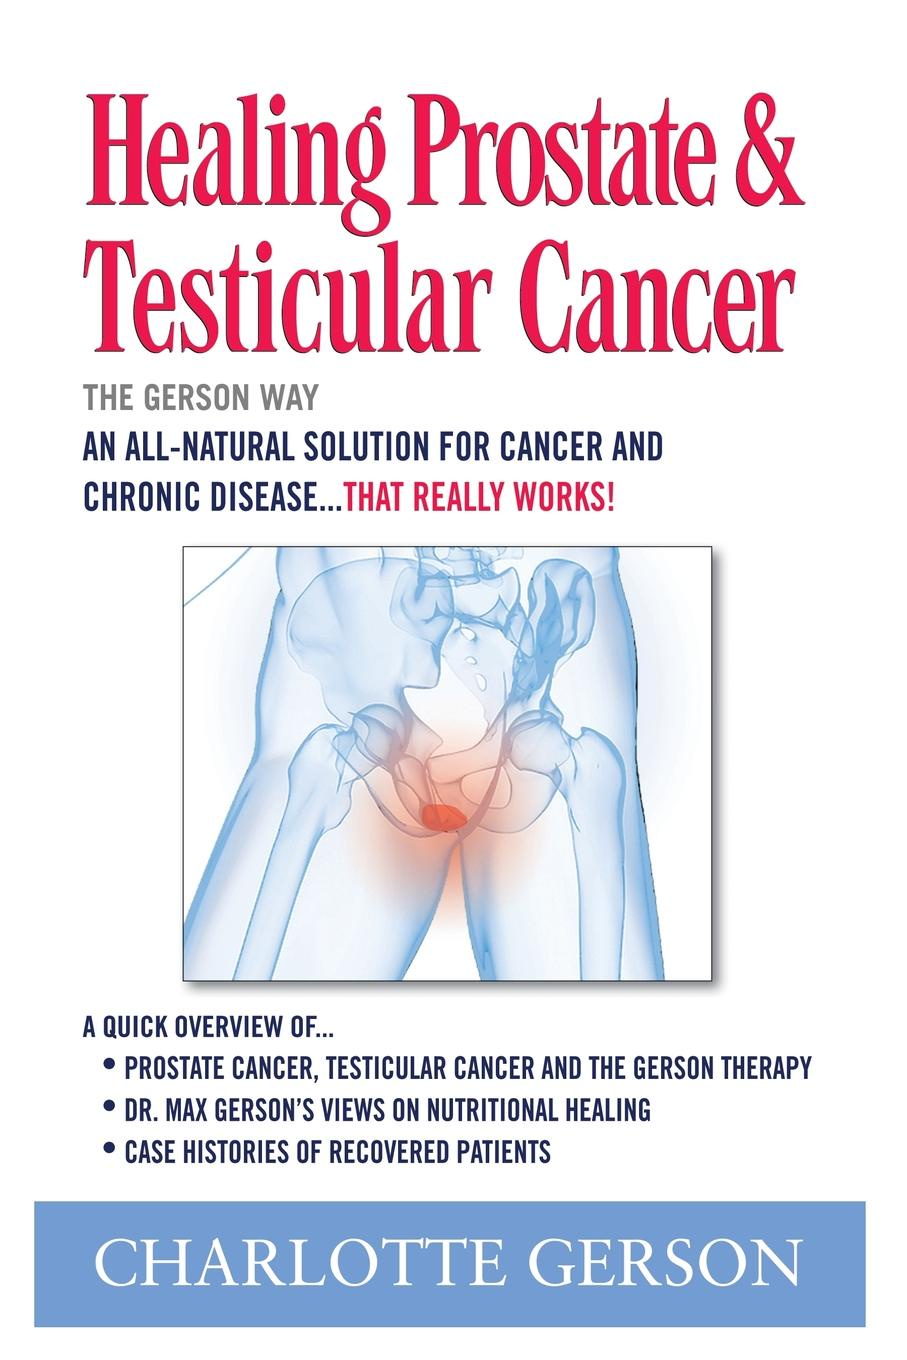 Charlotte Gerson Healing Prostate . Testicular Cancer. The Gerson Way цена